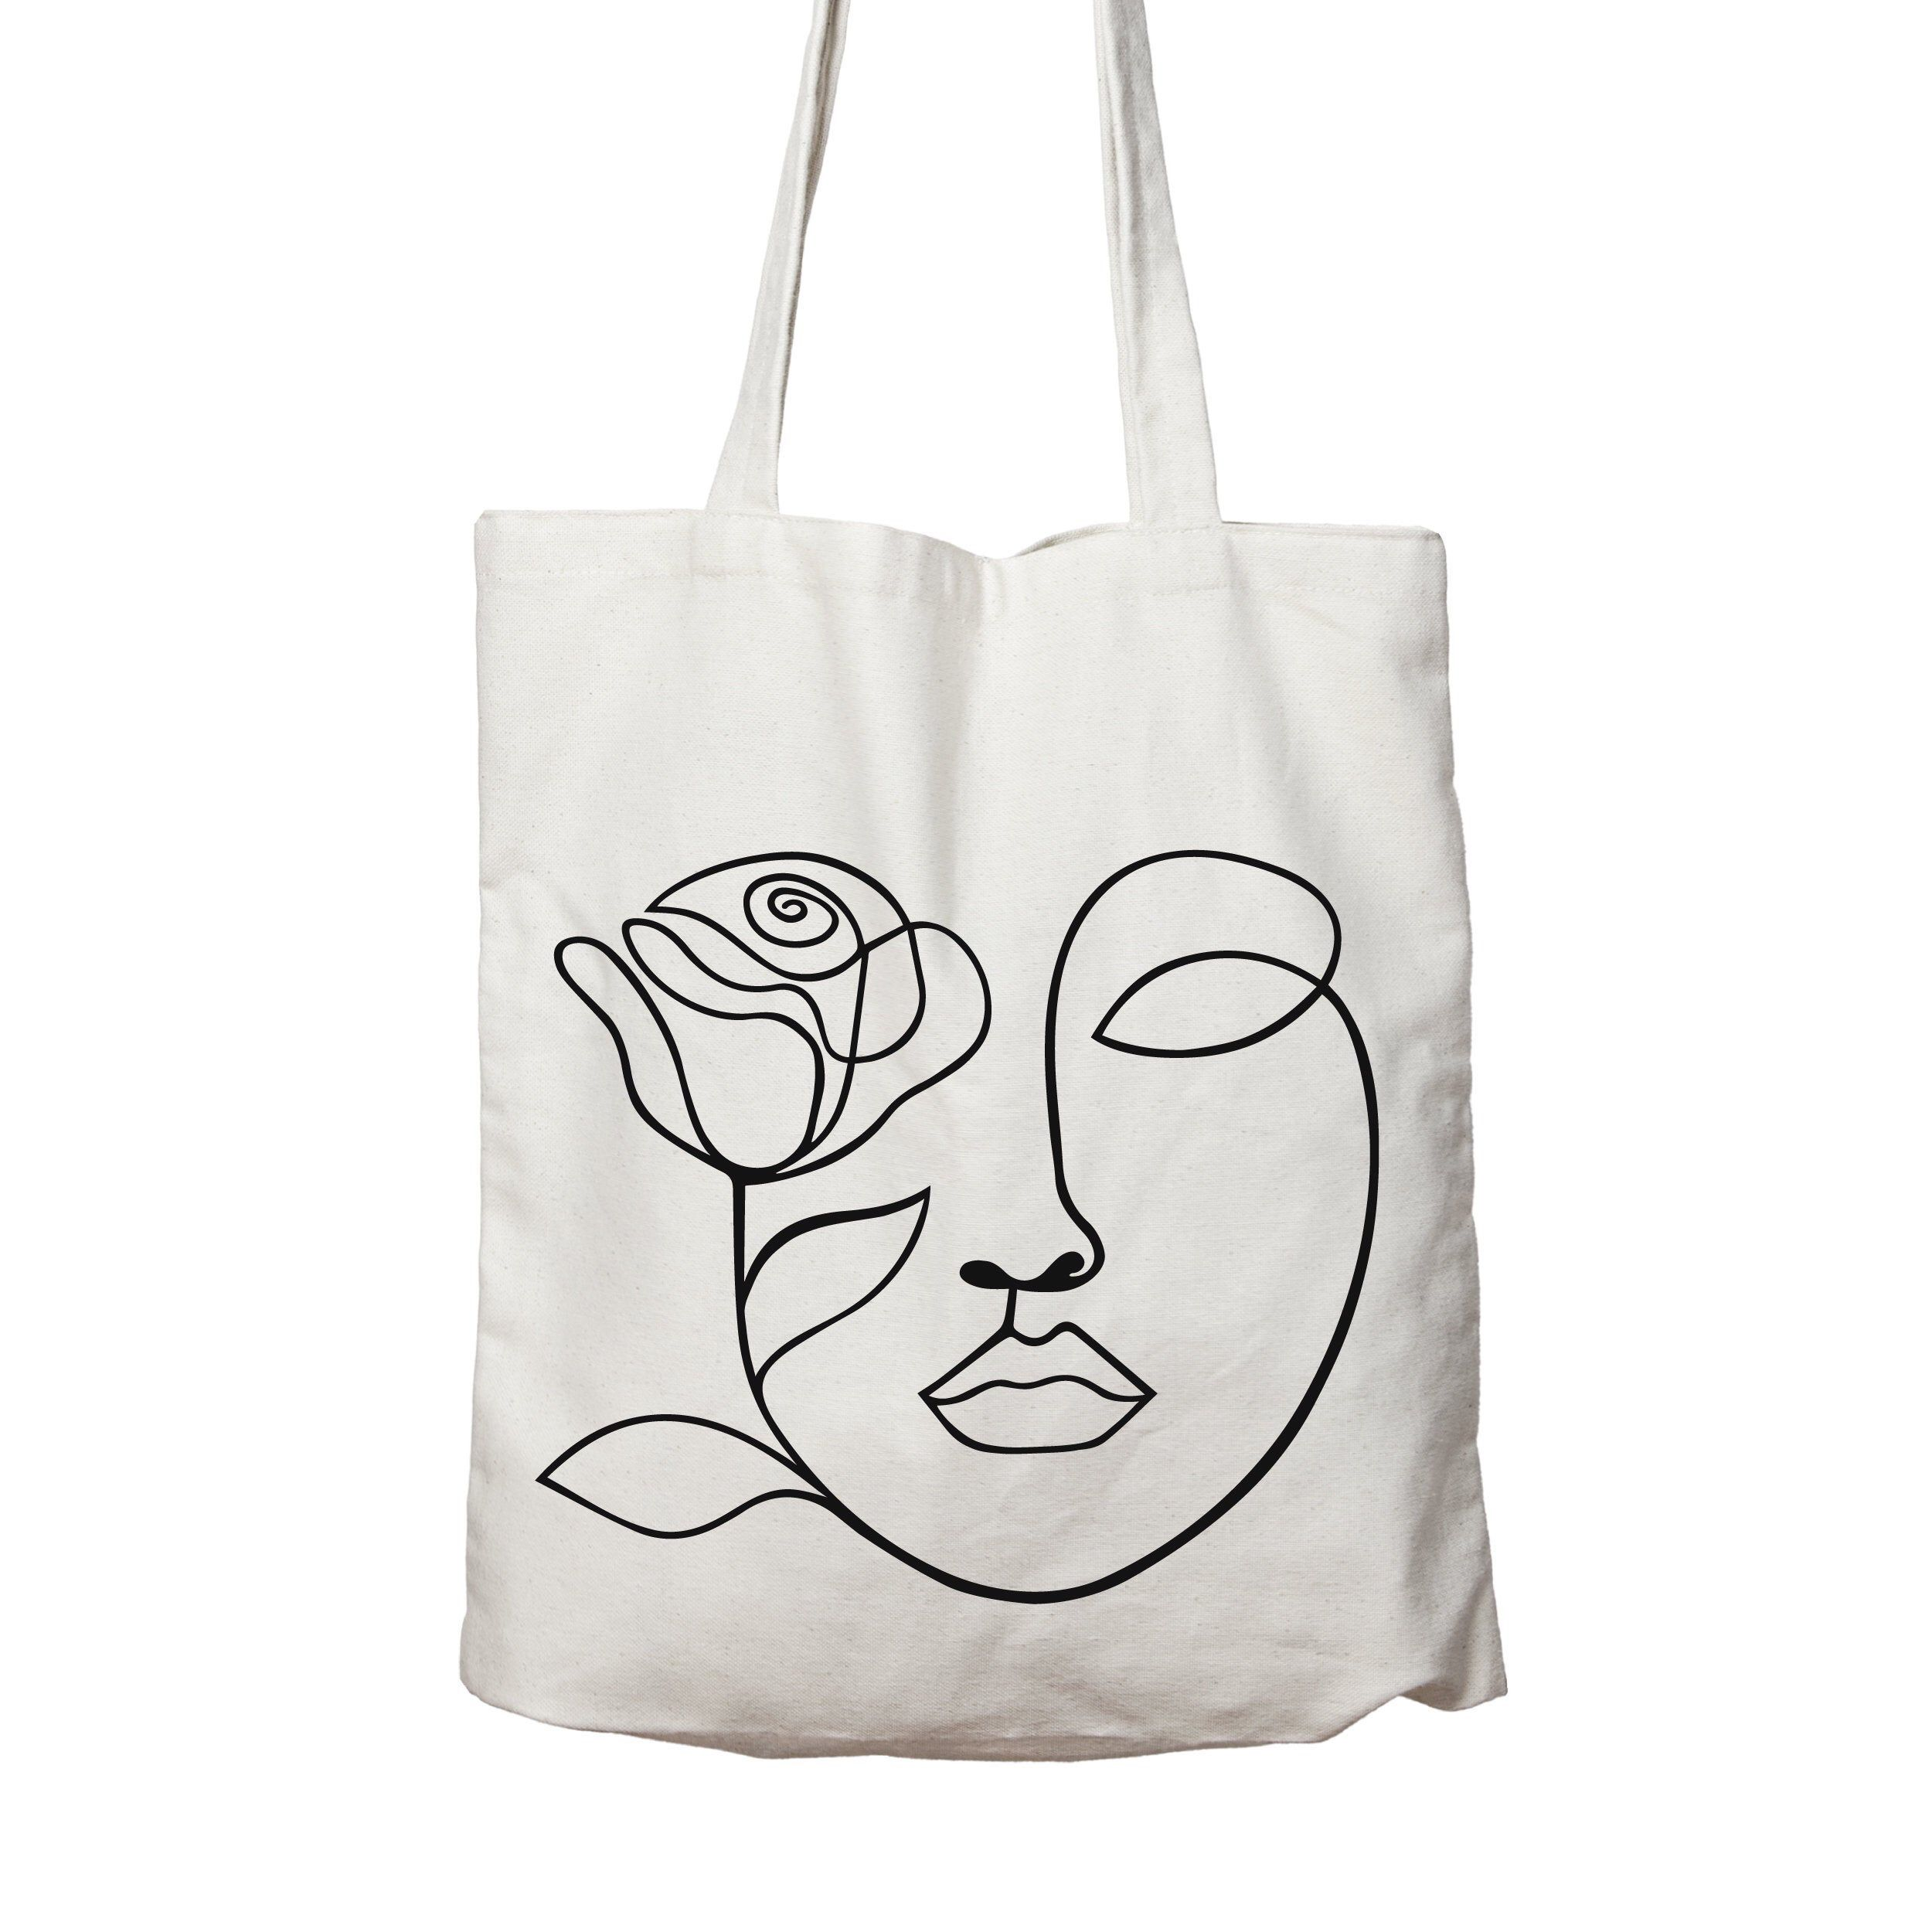 Cotton Bag Gift For Her Tote Bag One Line Art Tote Bag Eco Friendly Shopping Bag Shoulder Bags One Line Face with Flowers Tote Bag